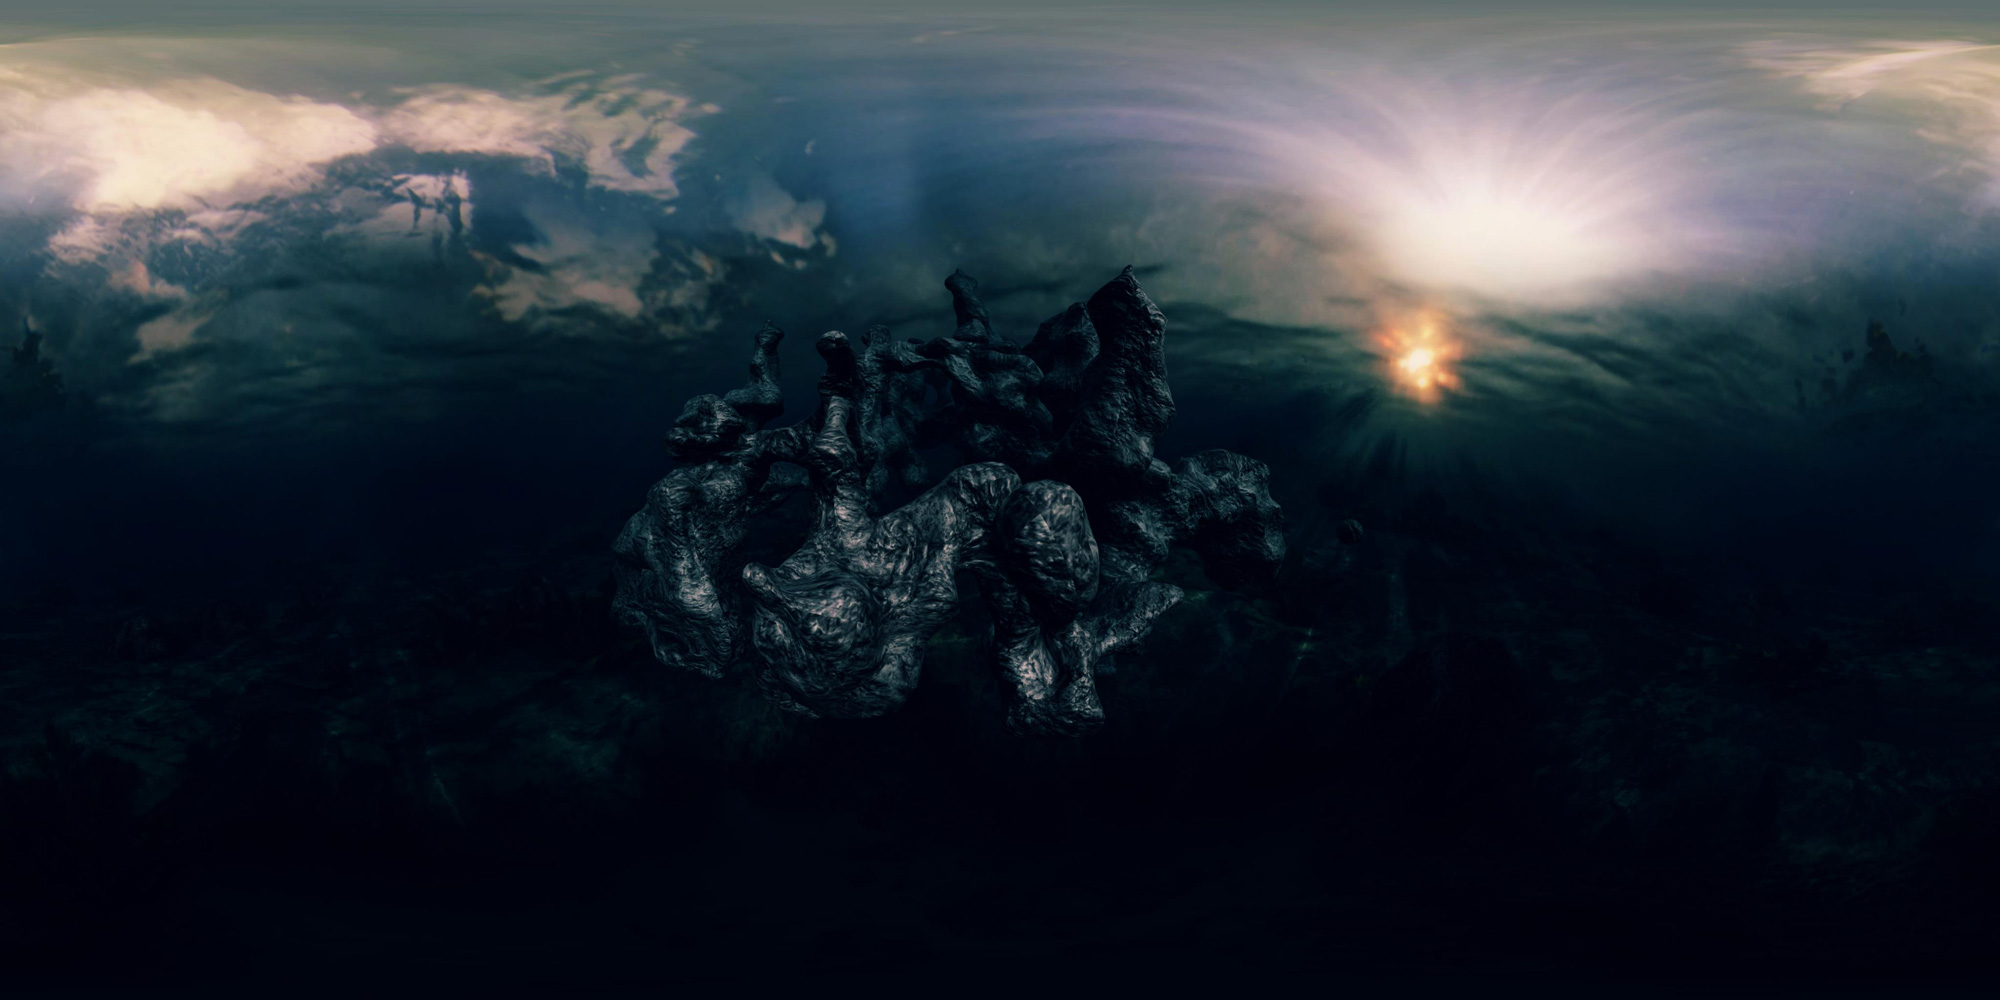 Another still image of the virtual reality music video created by Onionlab for the Catalan artist Undo